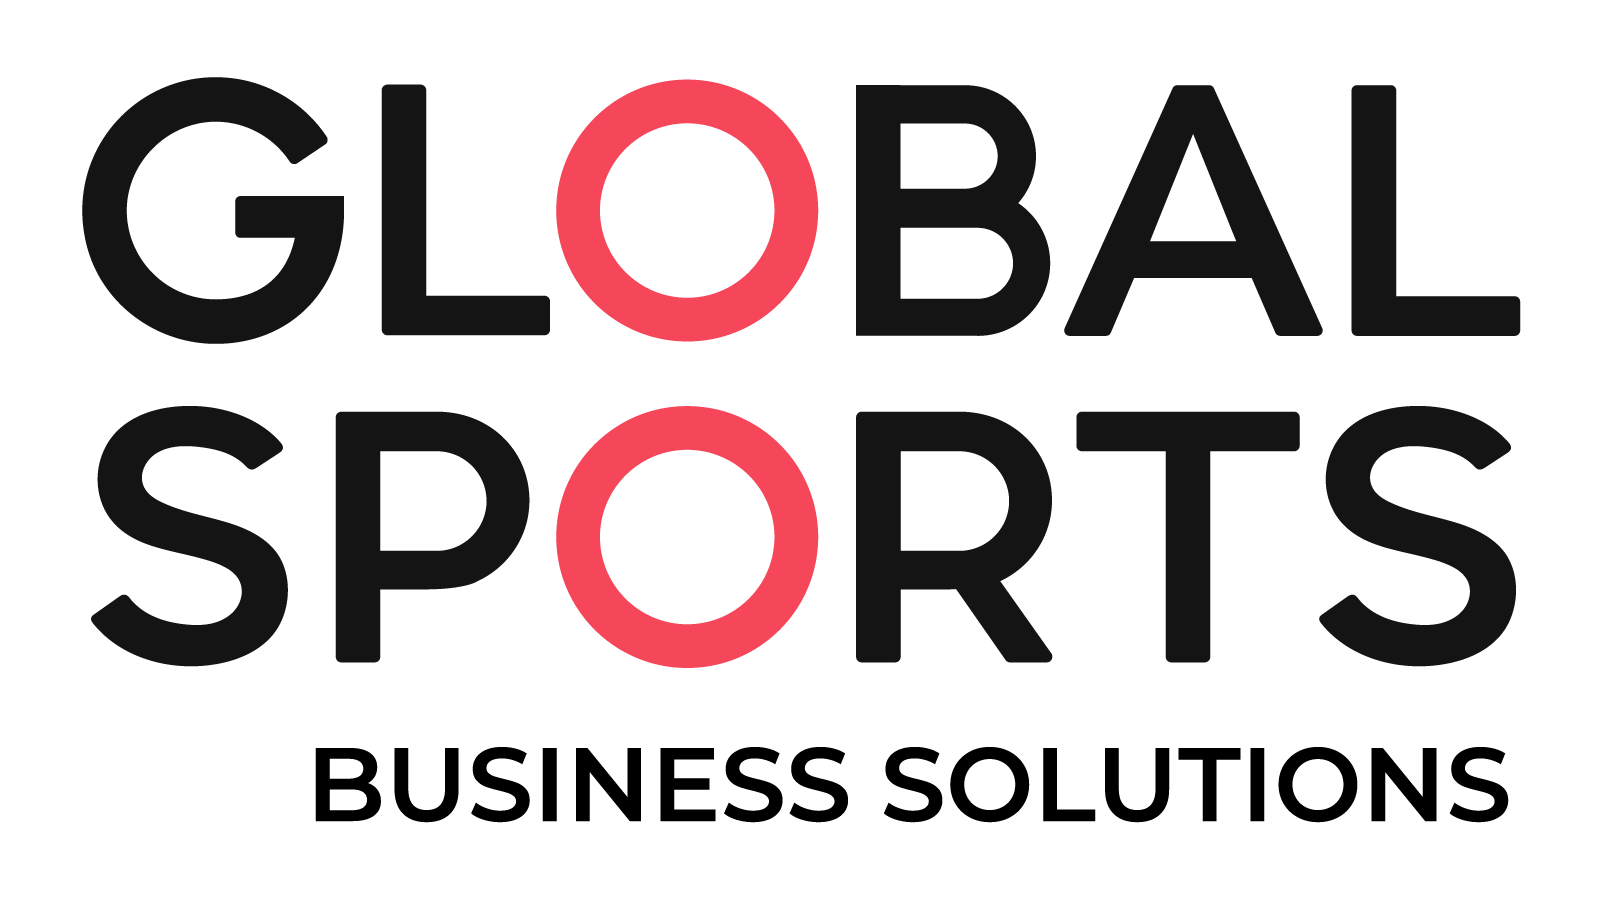 GSJ019_GLOBALSPORTS_LOGO LOCK UP_ALL_RGB_BLACK-RED_BUSINESS SOLUTIONS